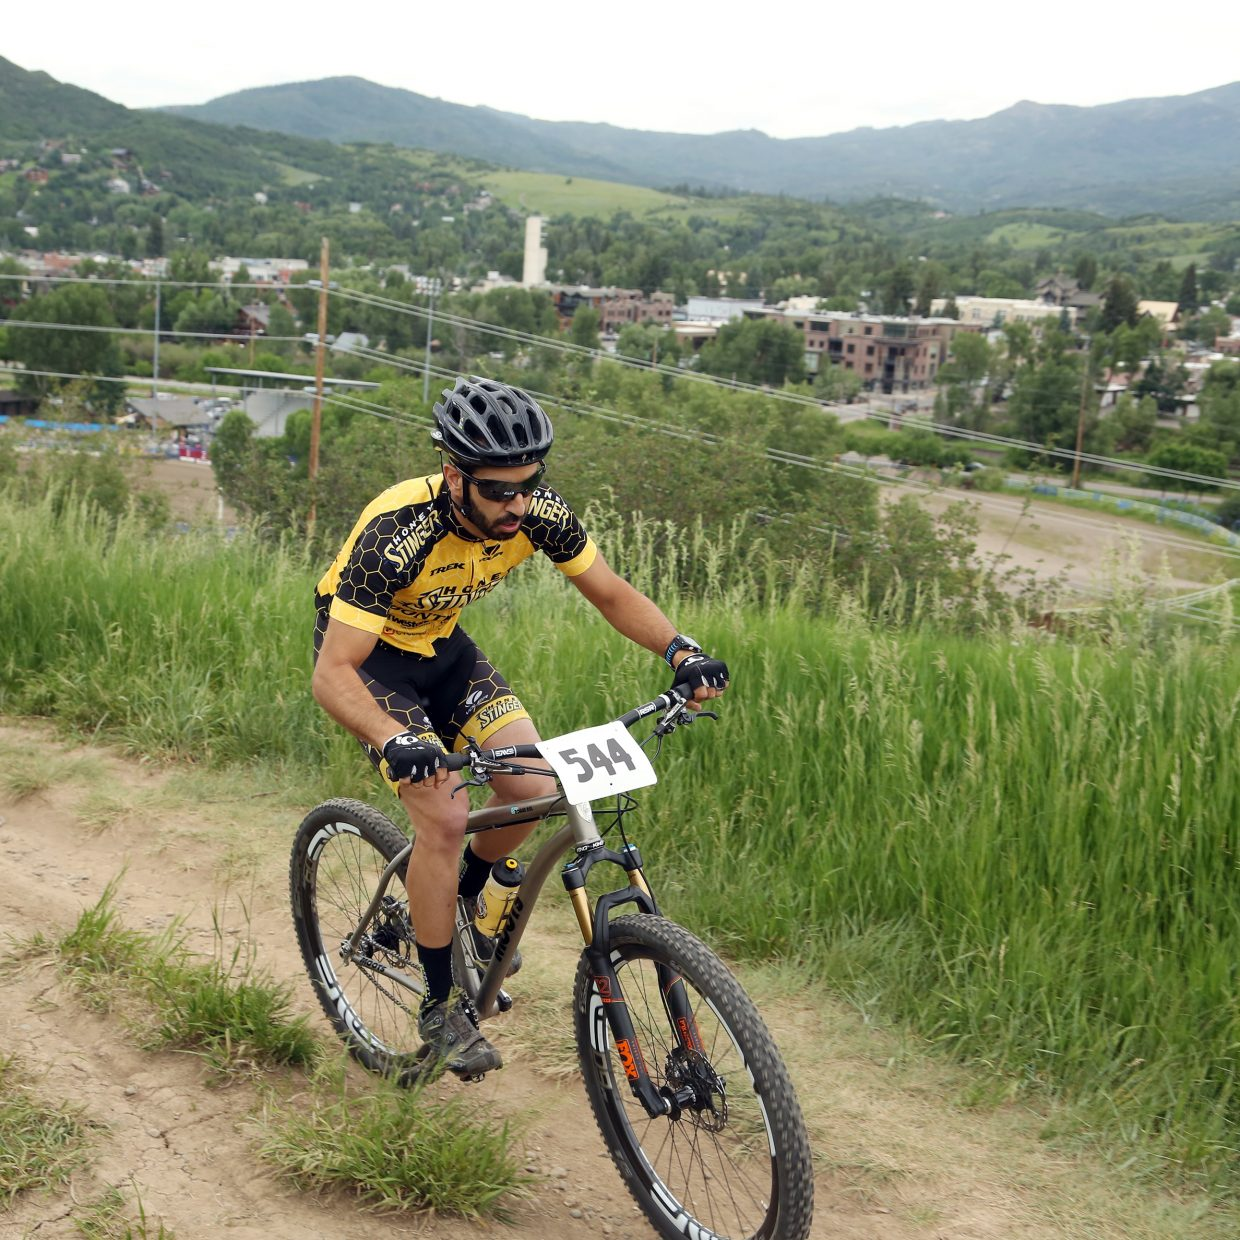 Chris Tamucci competes in the men's single speed division of the Emerald Envy XC Town Challenge mountain bike race on June 24, 2015, at Emerald Mountain in Steamboat Springs.